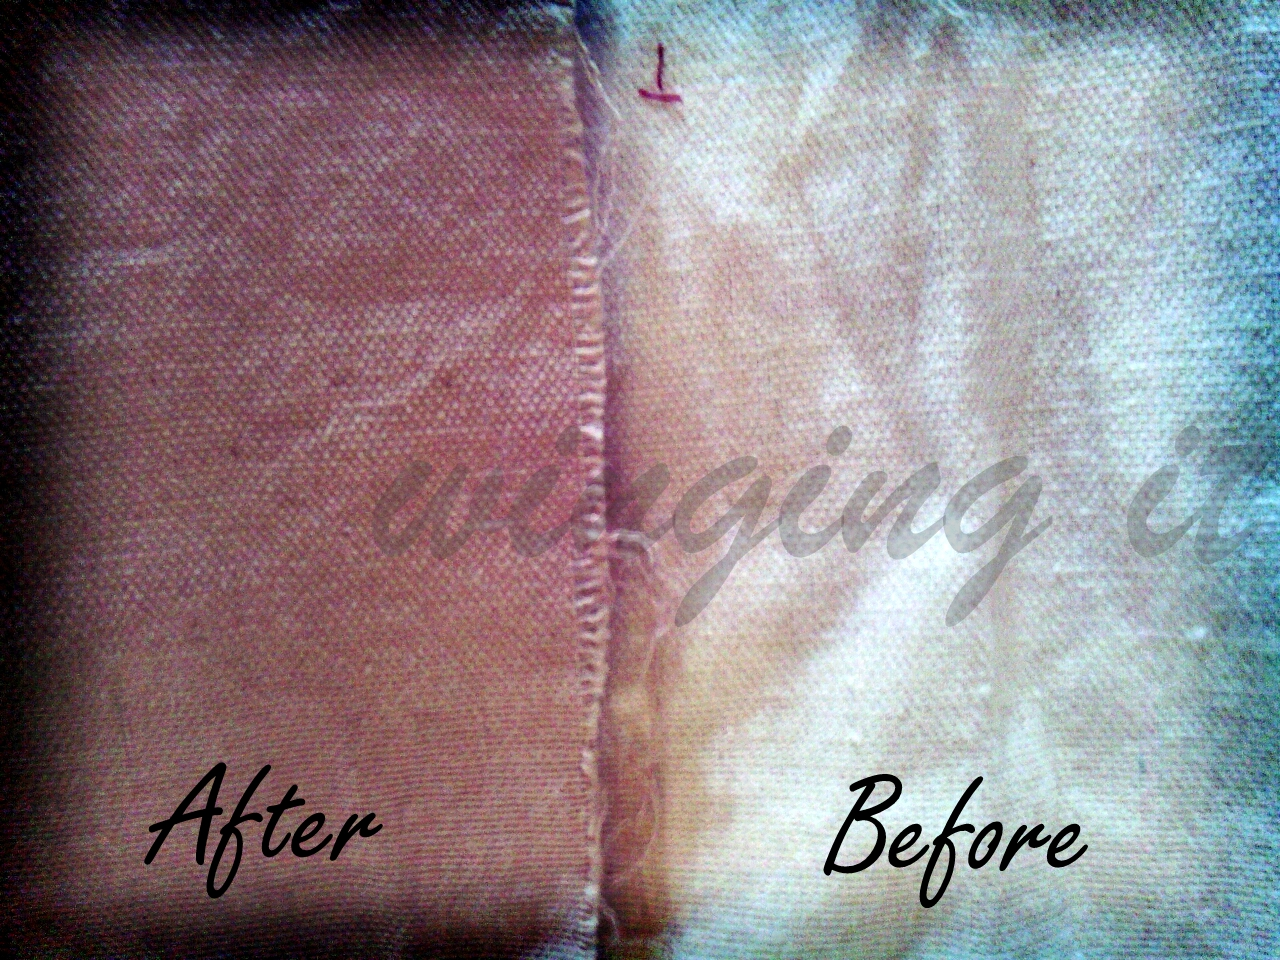 First You Need To Pick Out Your Fabric The Dying Process Works Best On Natural Fabrics Honestly I M Not Too Sure What Kind Of Had